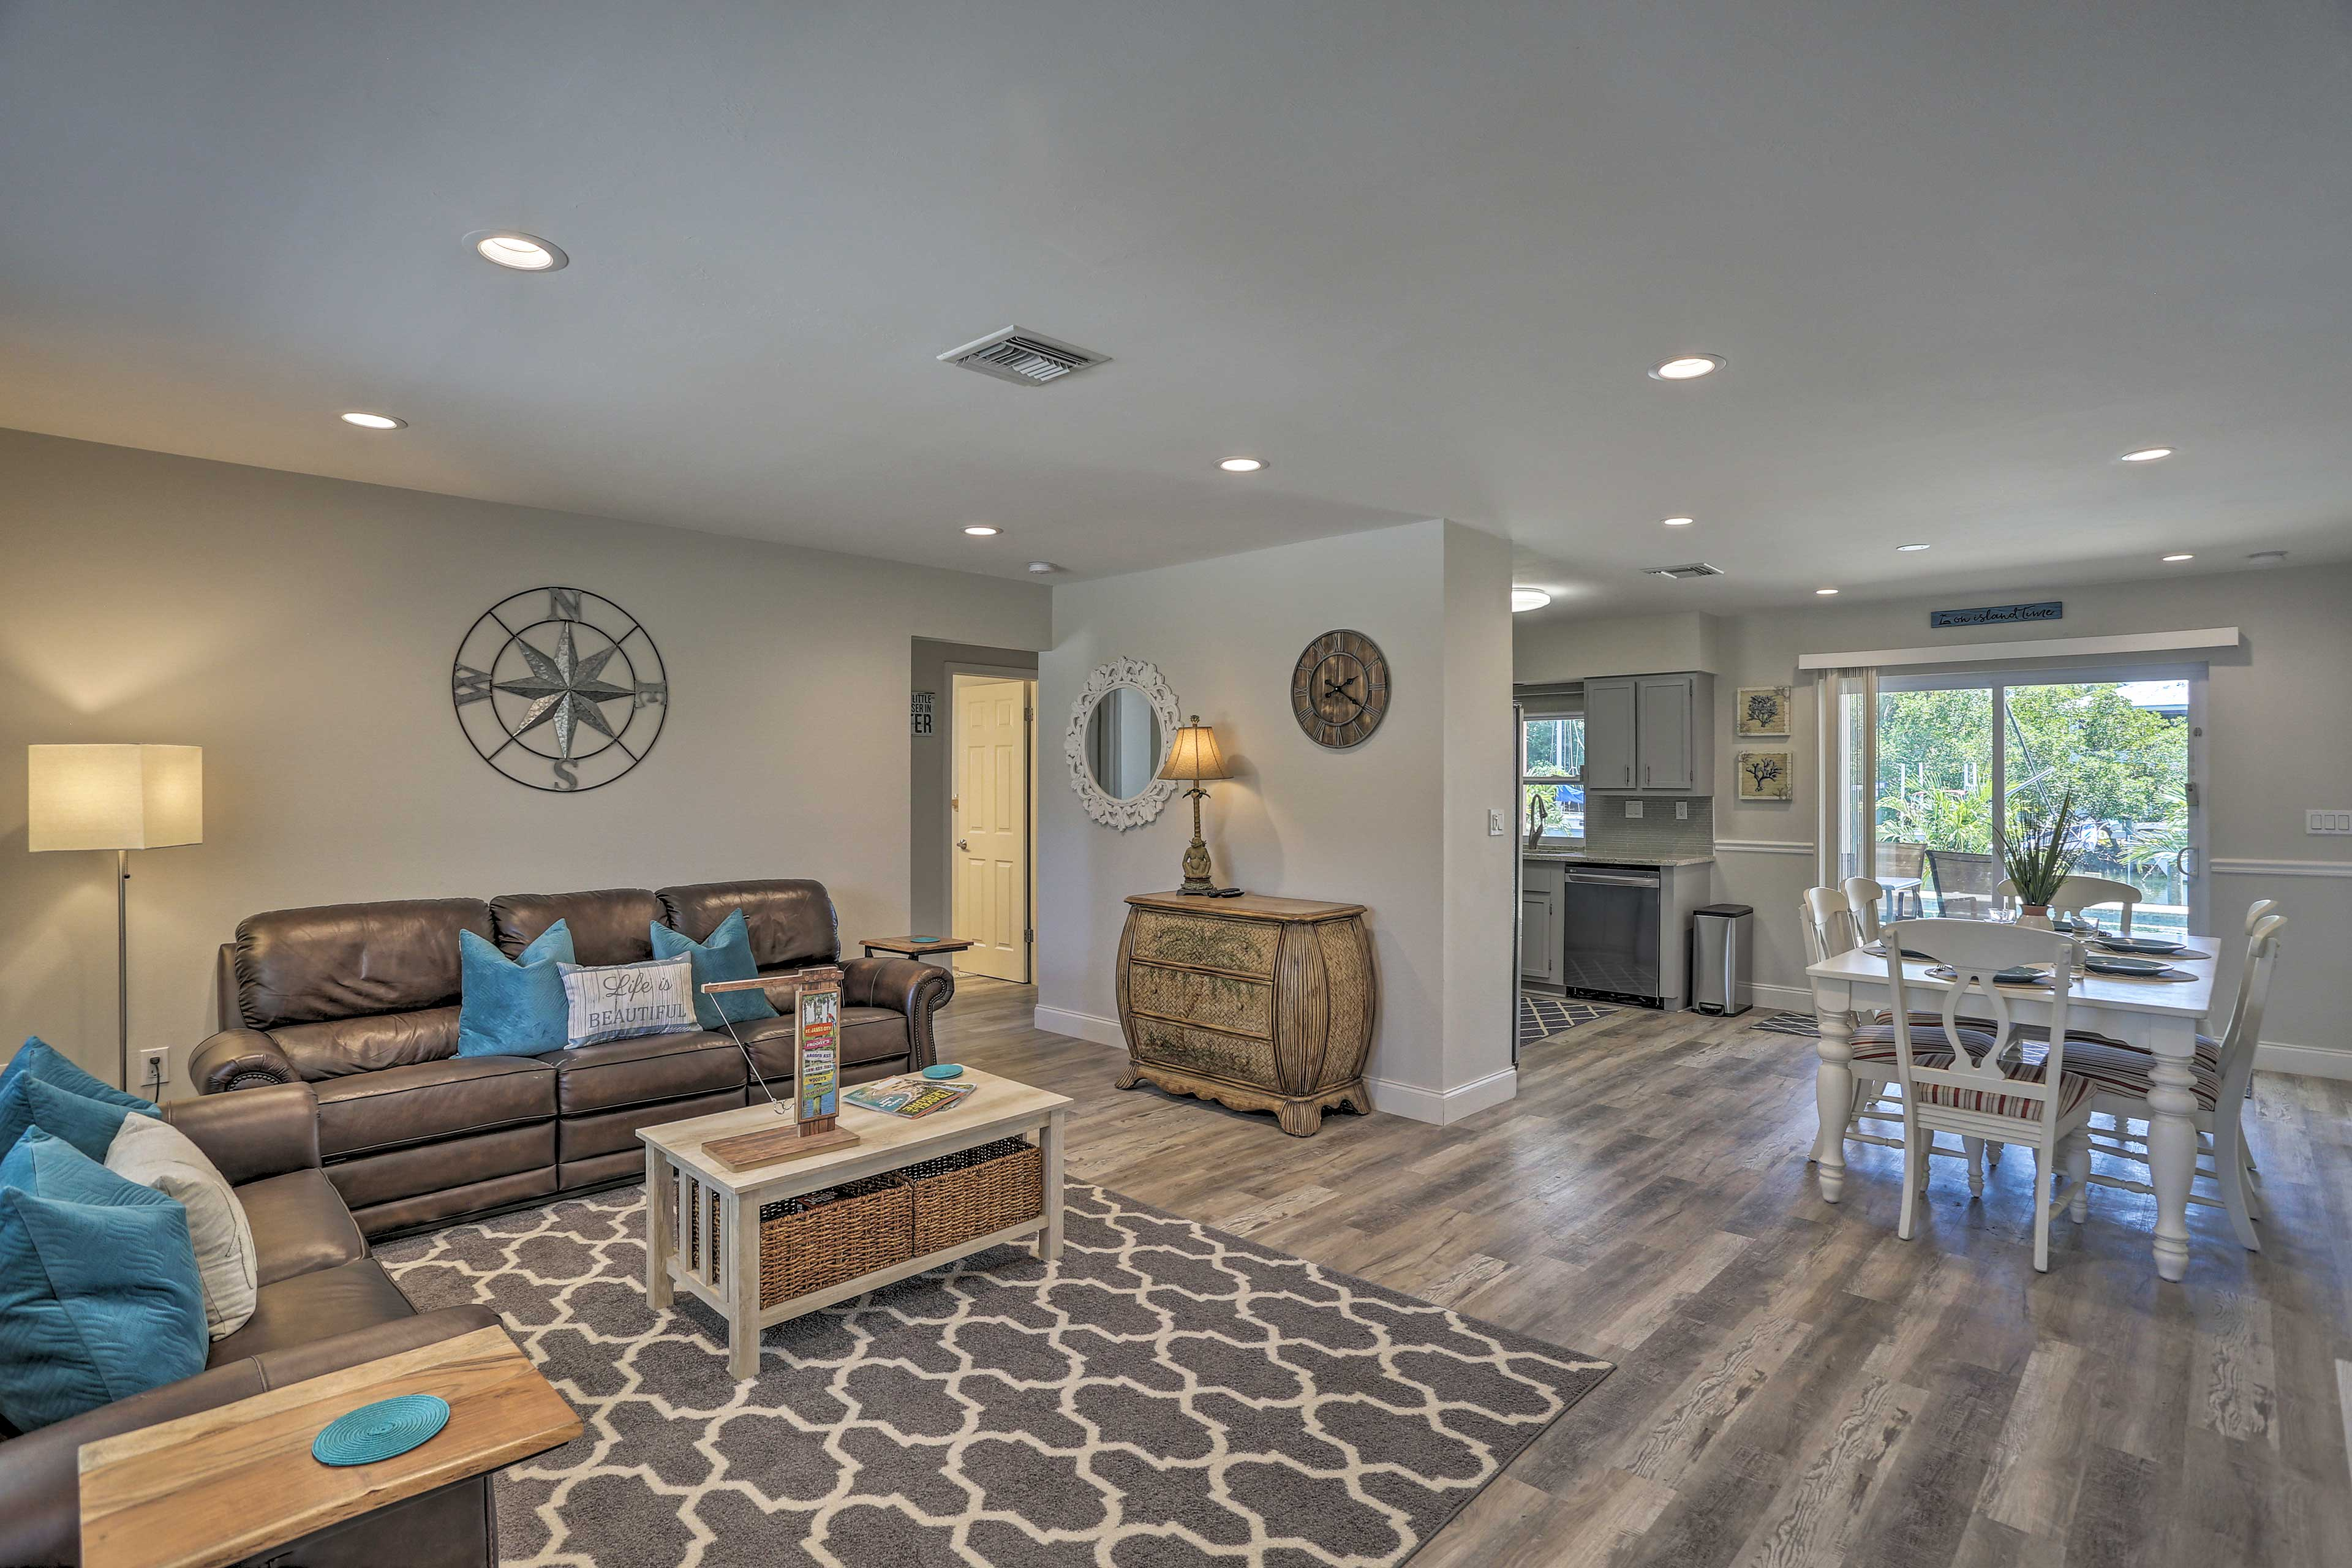 The open layout leads freely into the kitchen and dining area.